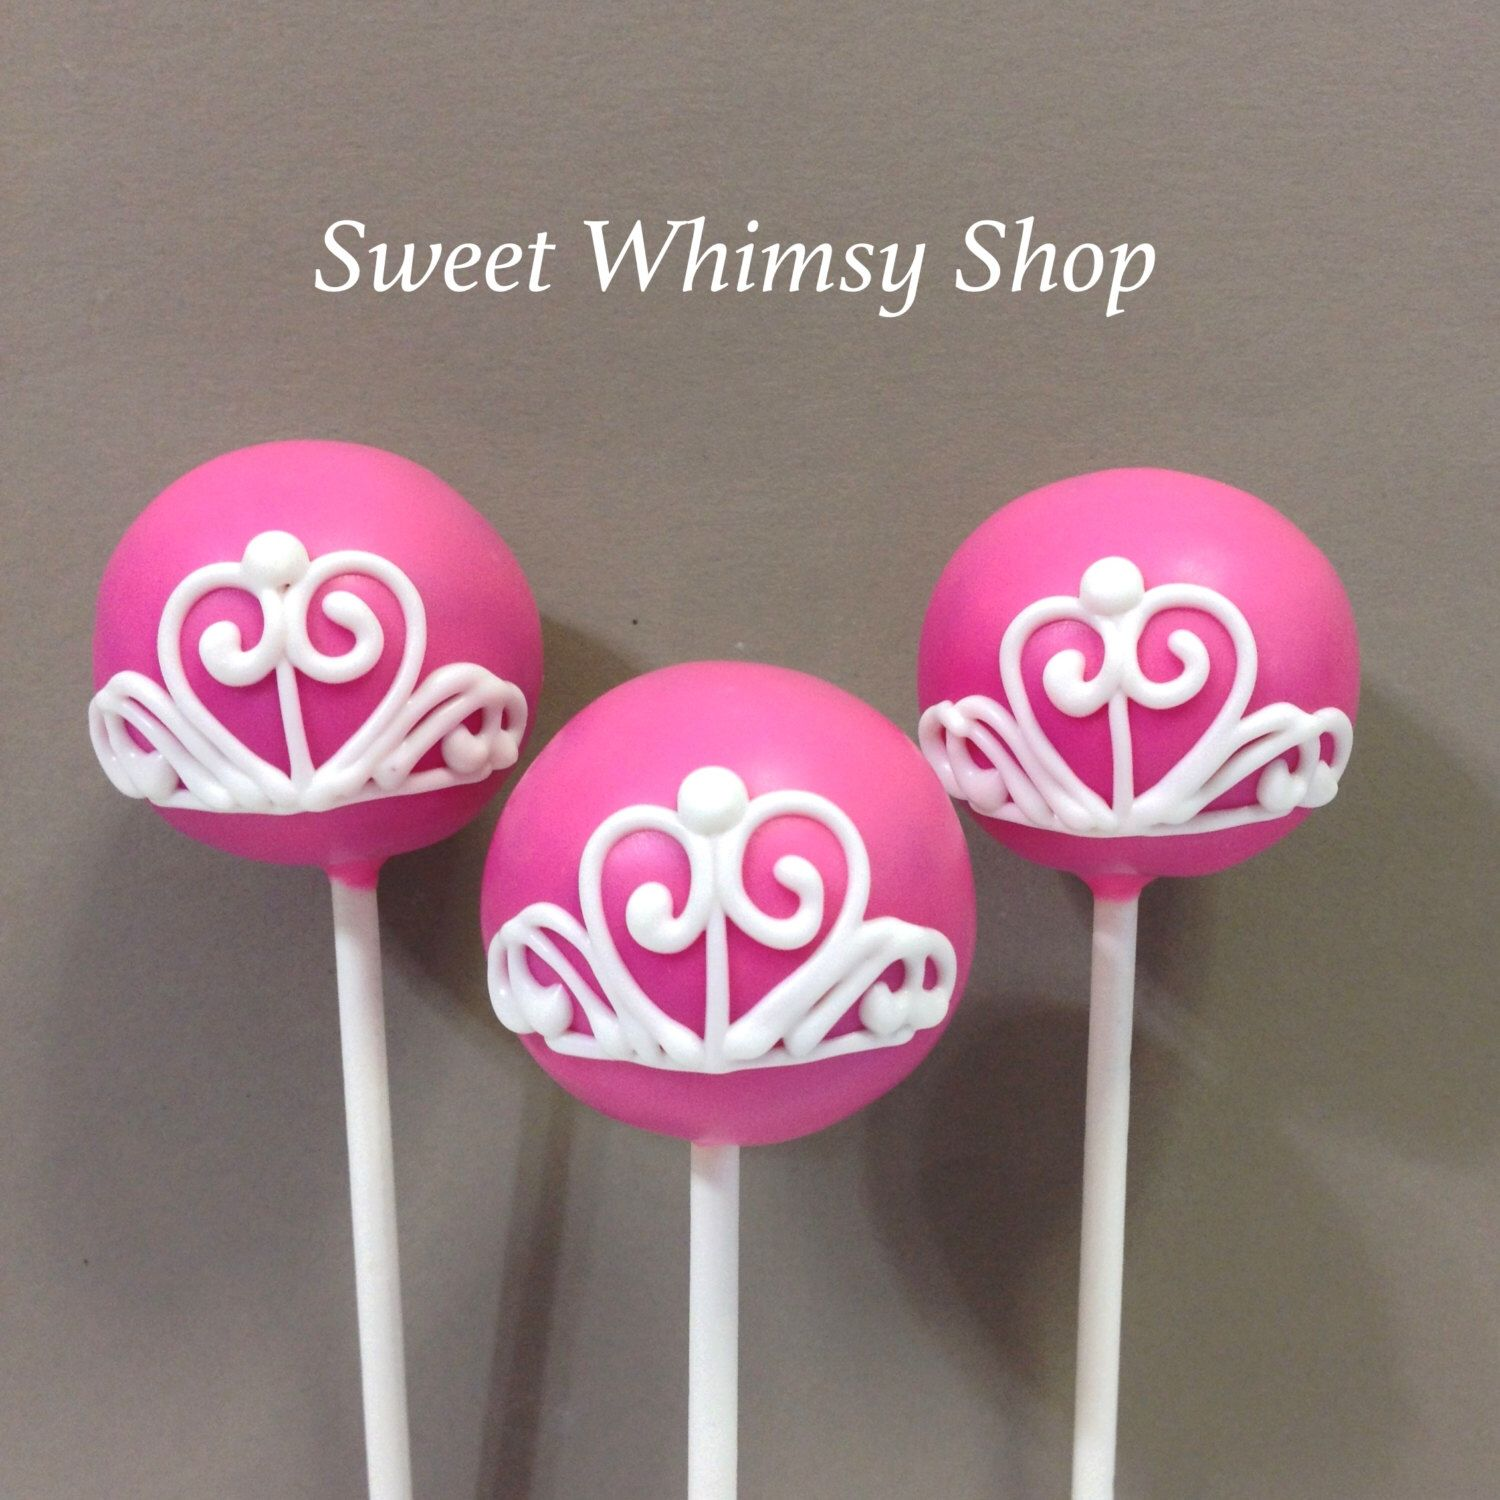 12 Princess Tiara Cake Pops for Disney theme, Fairytale, Cinderella ...